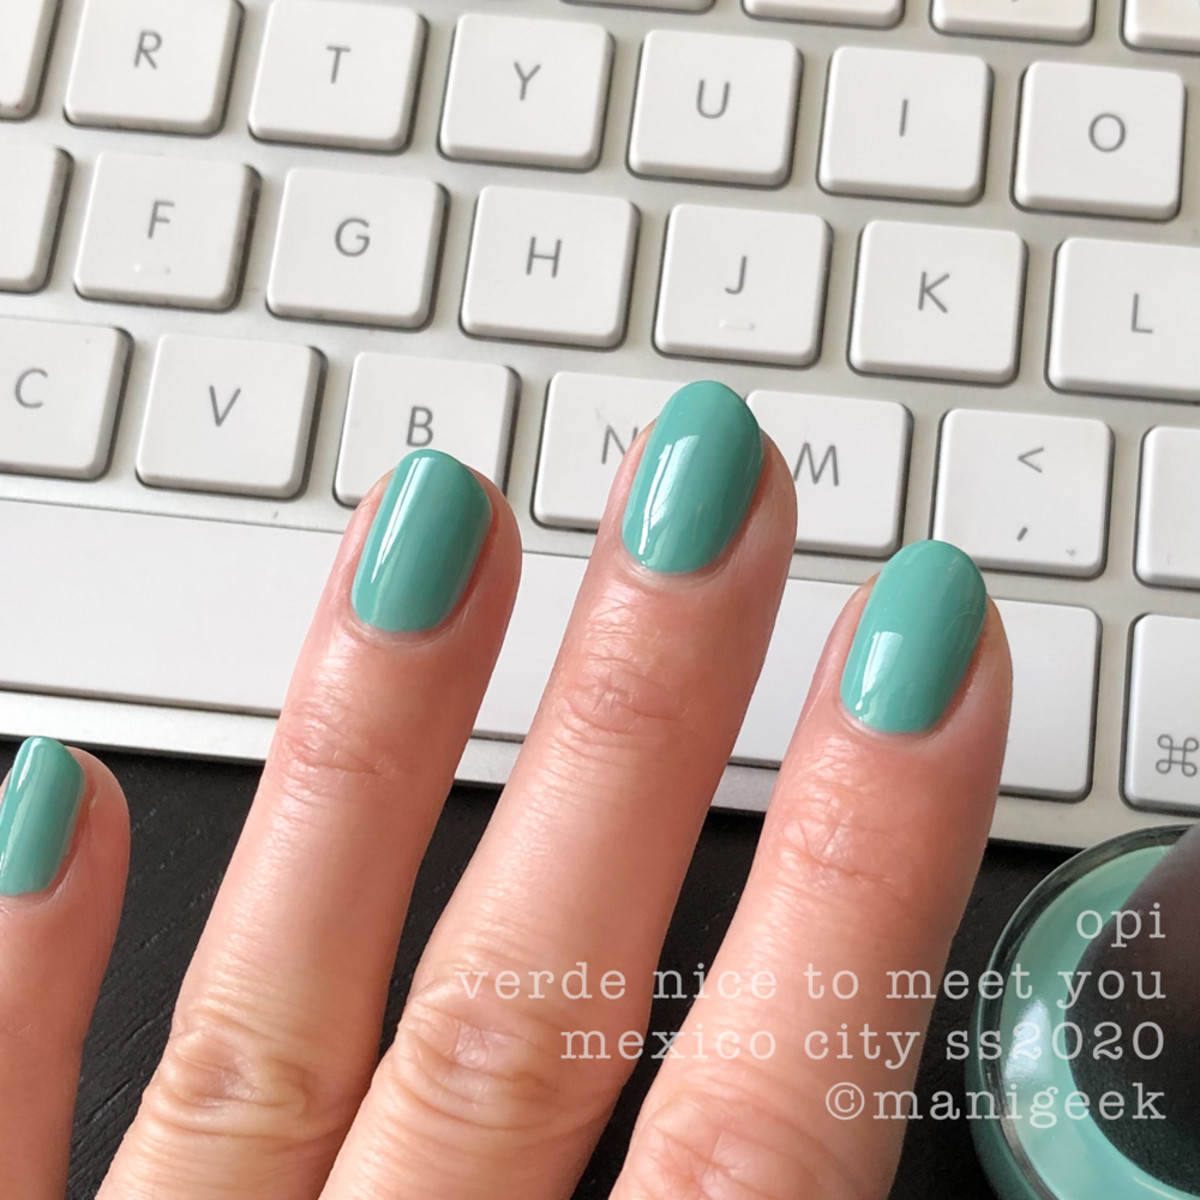 OPI Verde Nice To Meet You - OPI Mexico City Swatches Review 2020